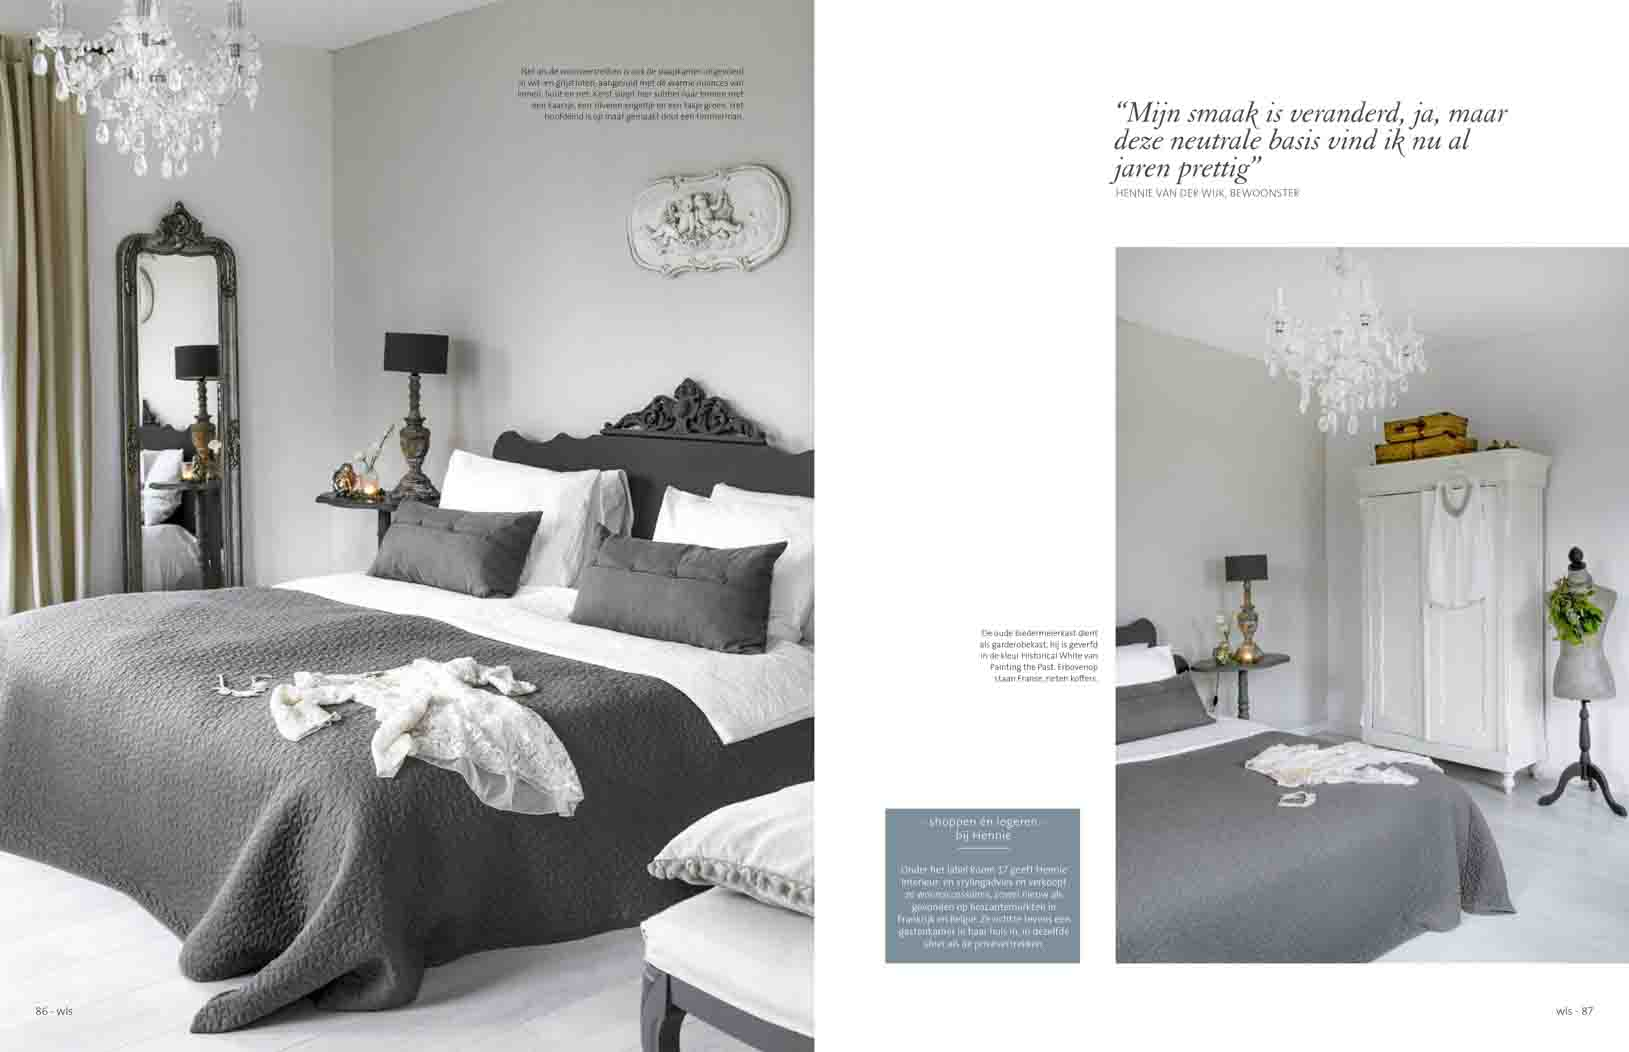 Bedroom in white and grey tones